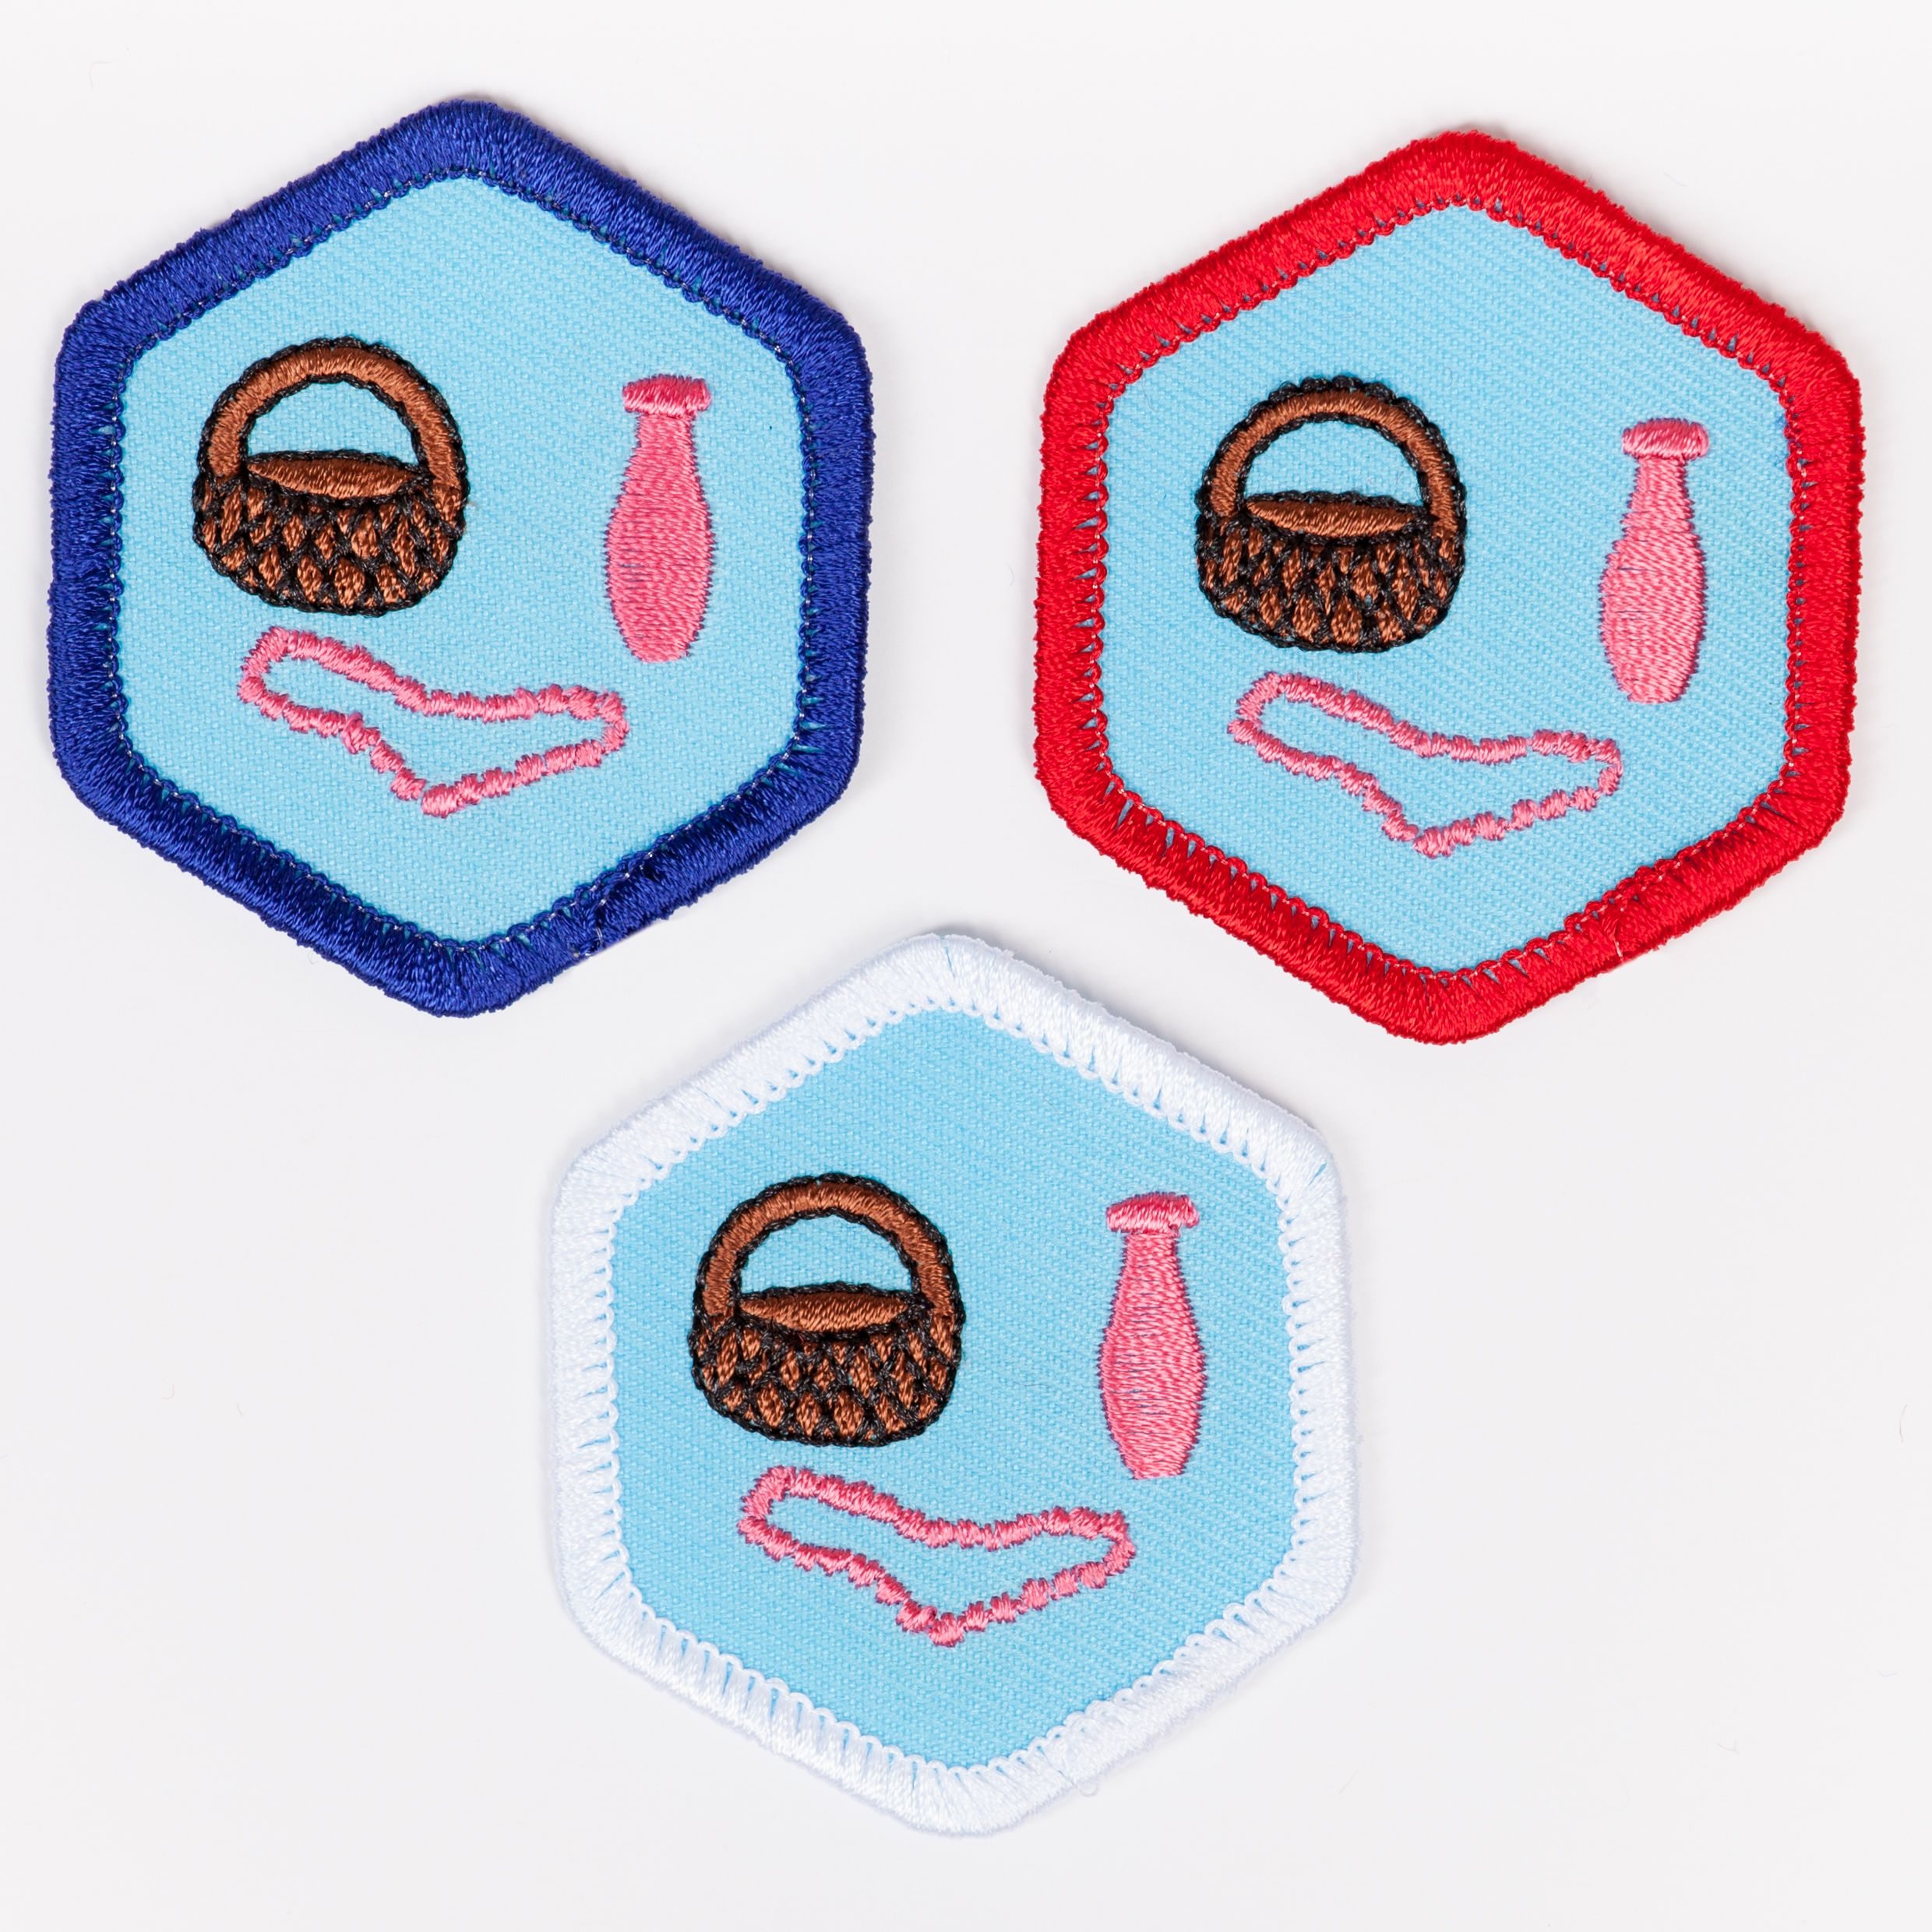 The Ahg Creative Crafts Badge Gives Girls The Chance To